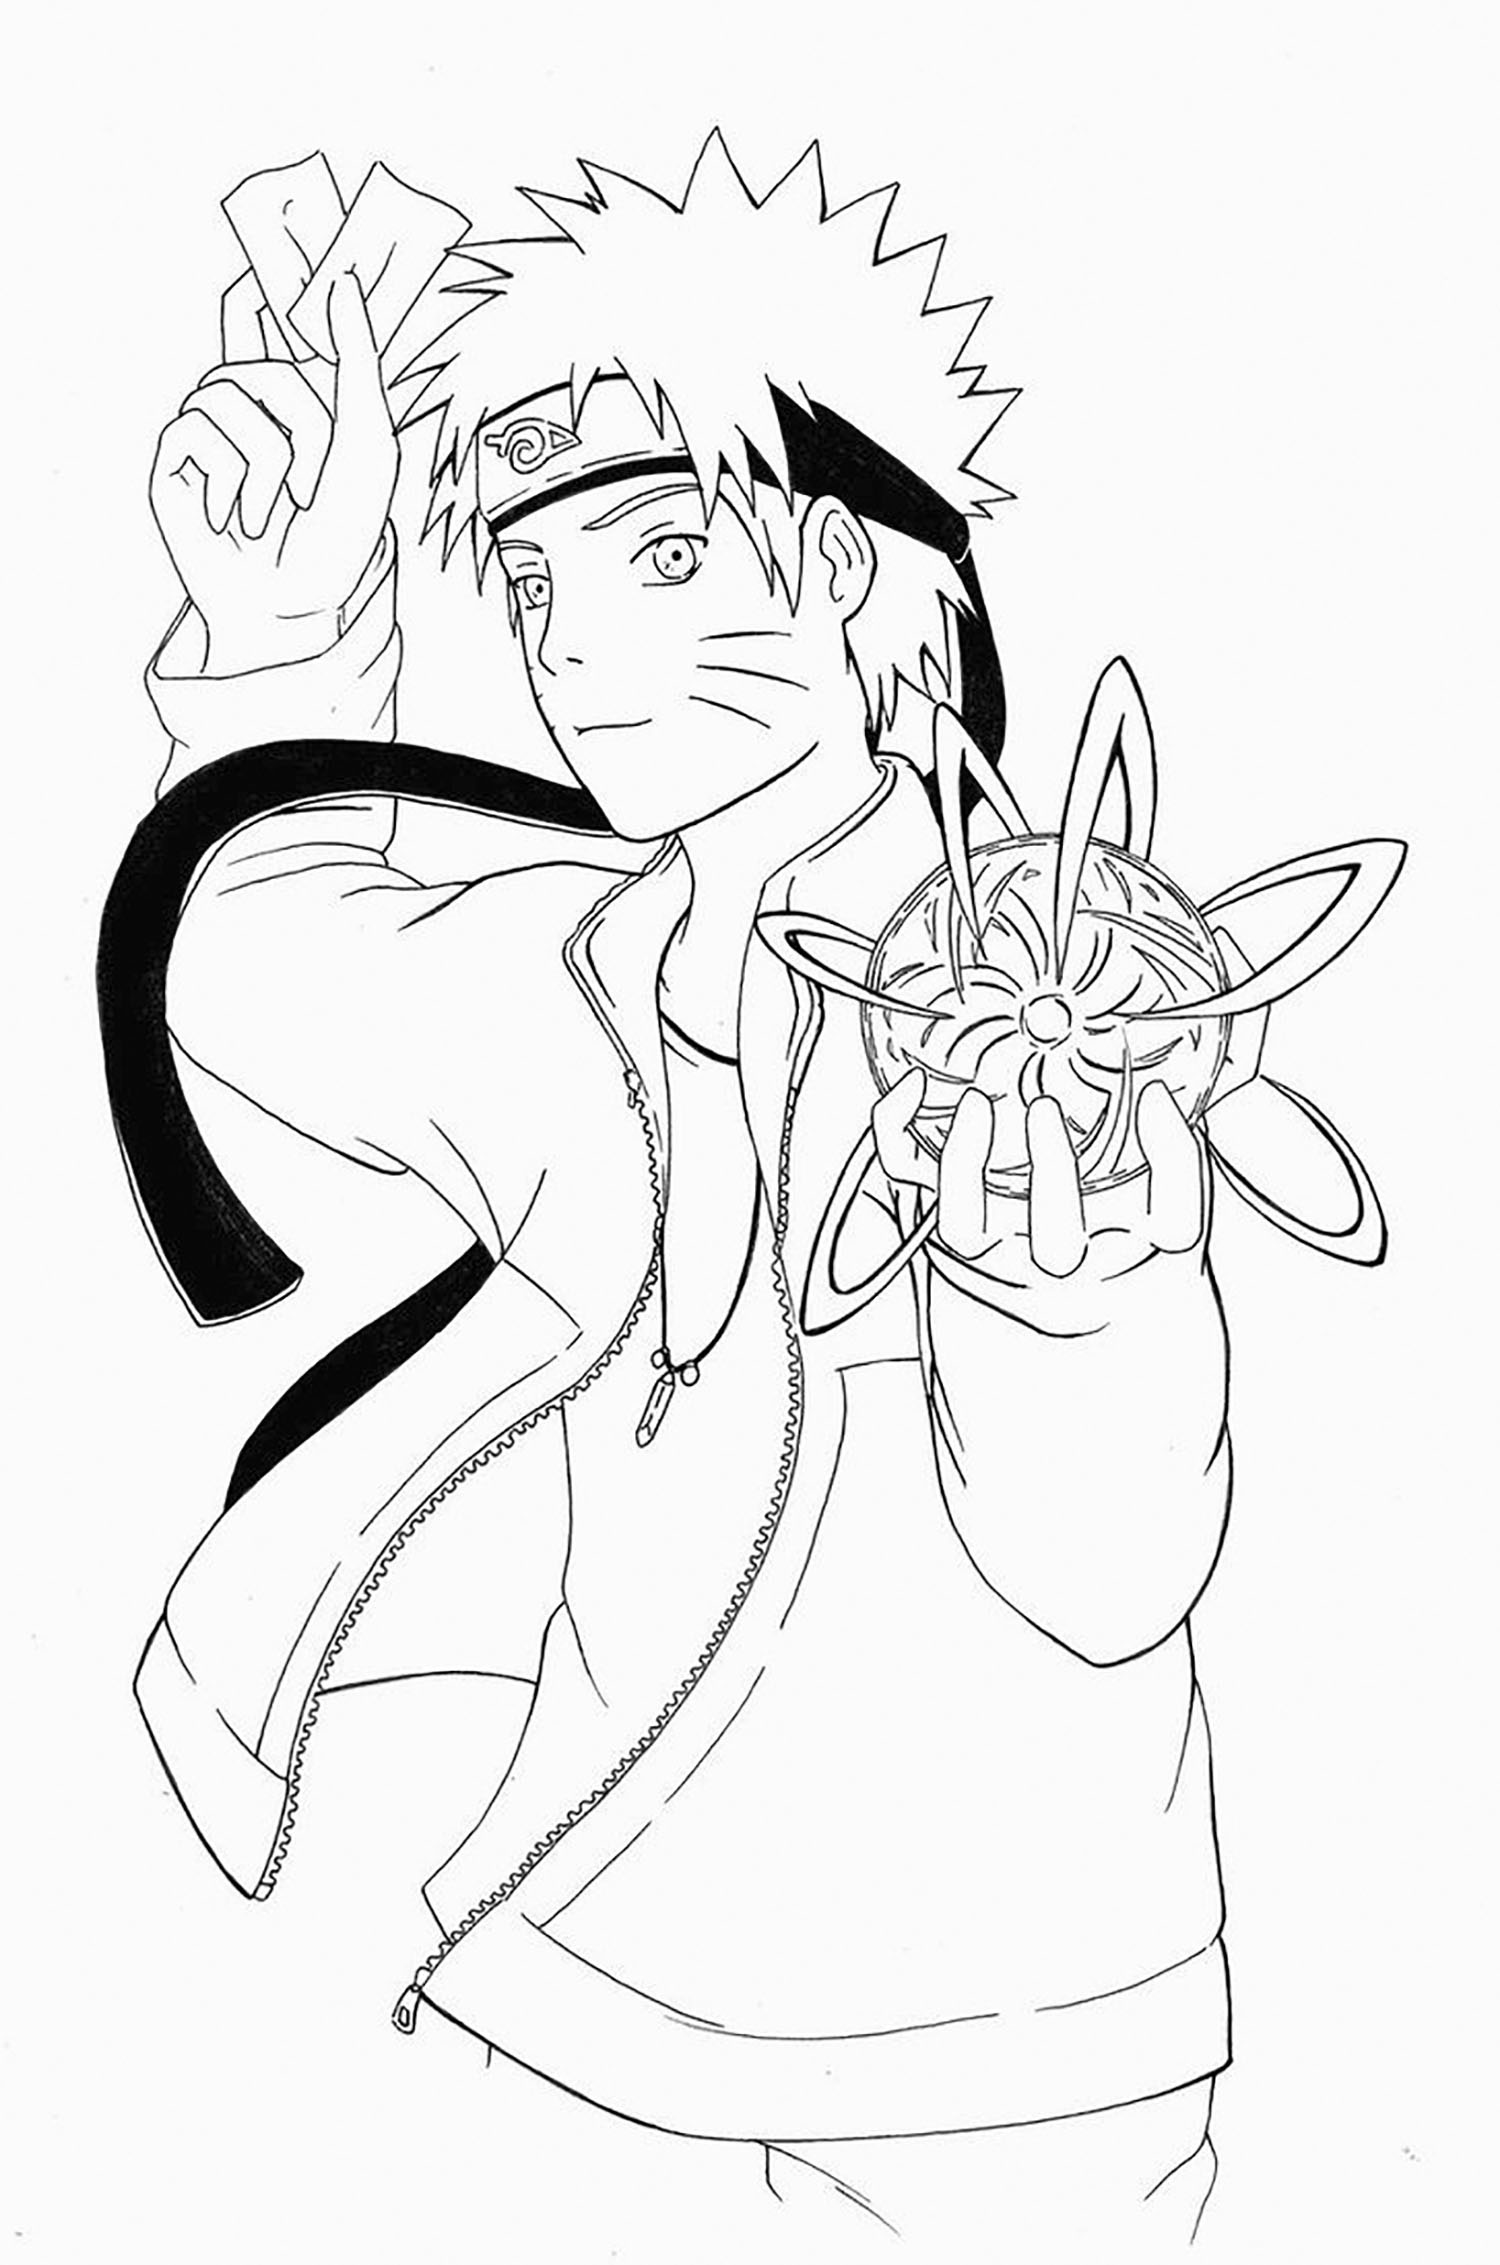 naruto coloring sheets free printable naruto coloring pages sheets coloring naruto